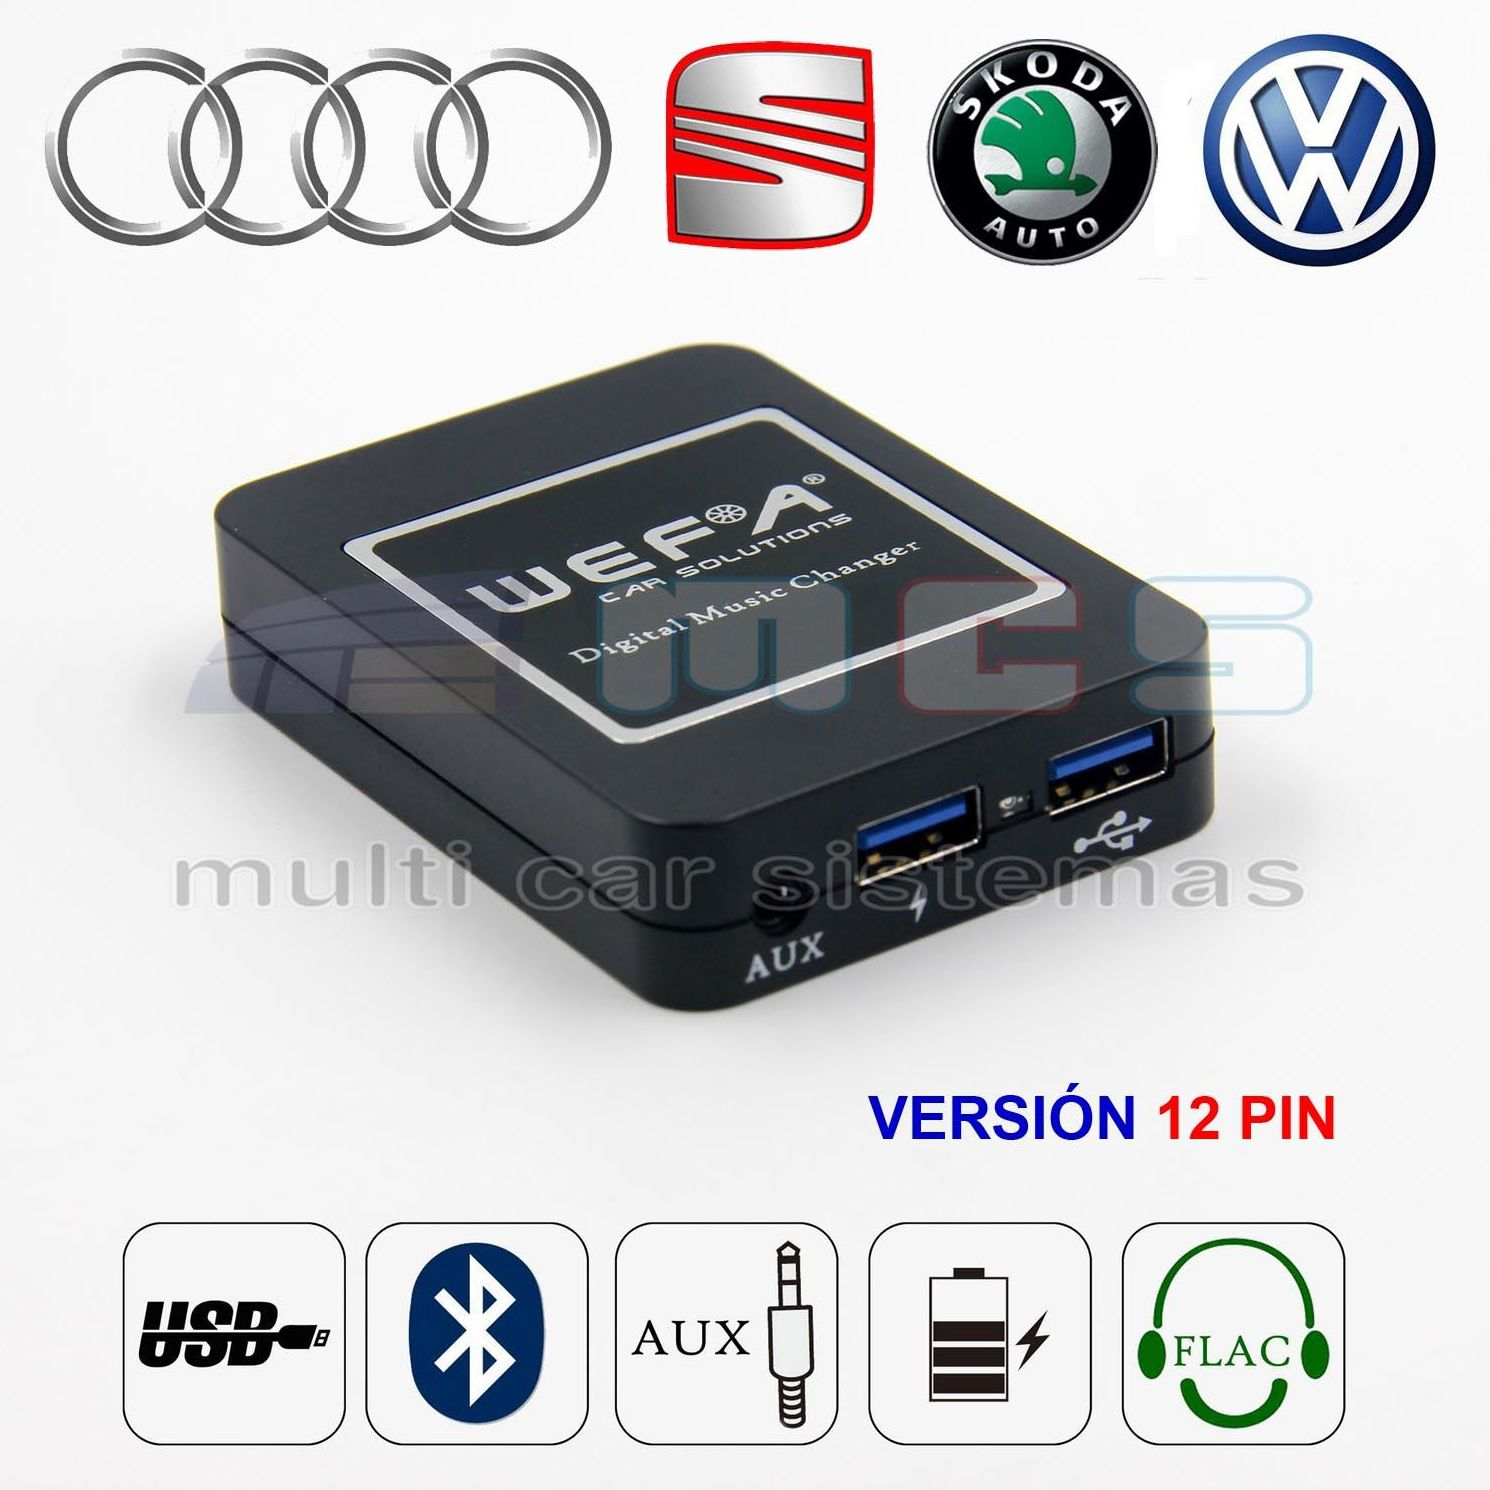 WEFATECH DMC DIGITAL MUSIC CHANGER VW AUDI SEAT SKODA  12 PIN }}